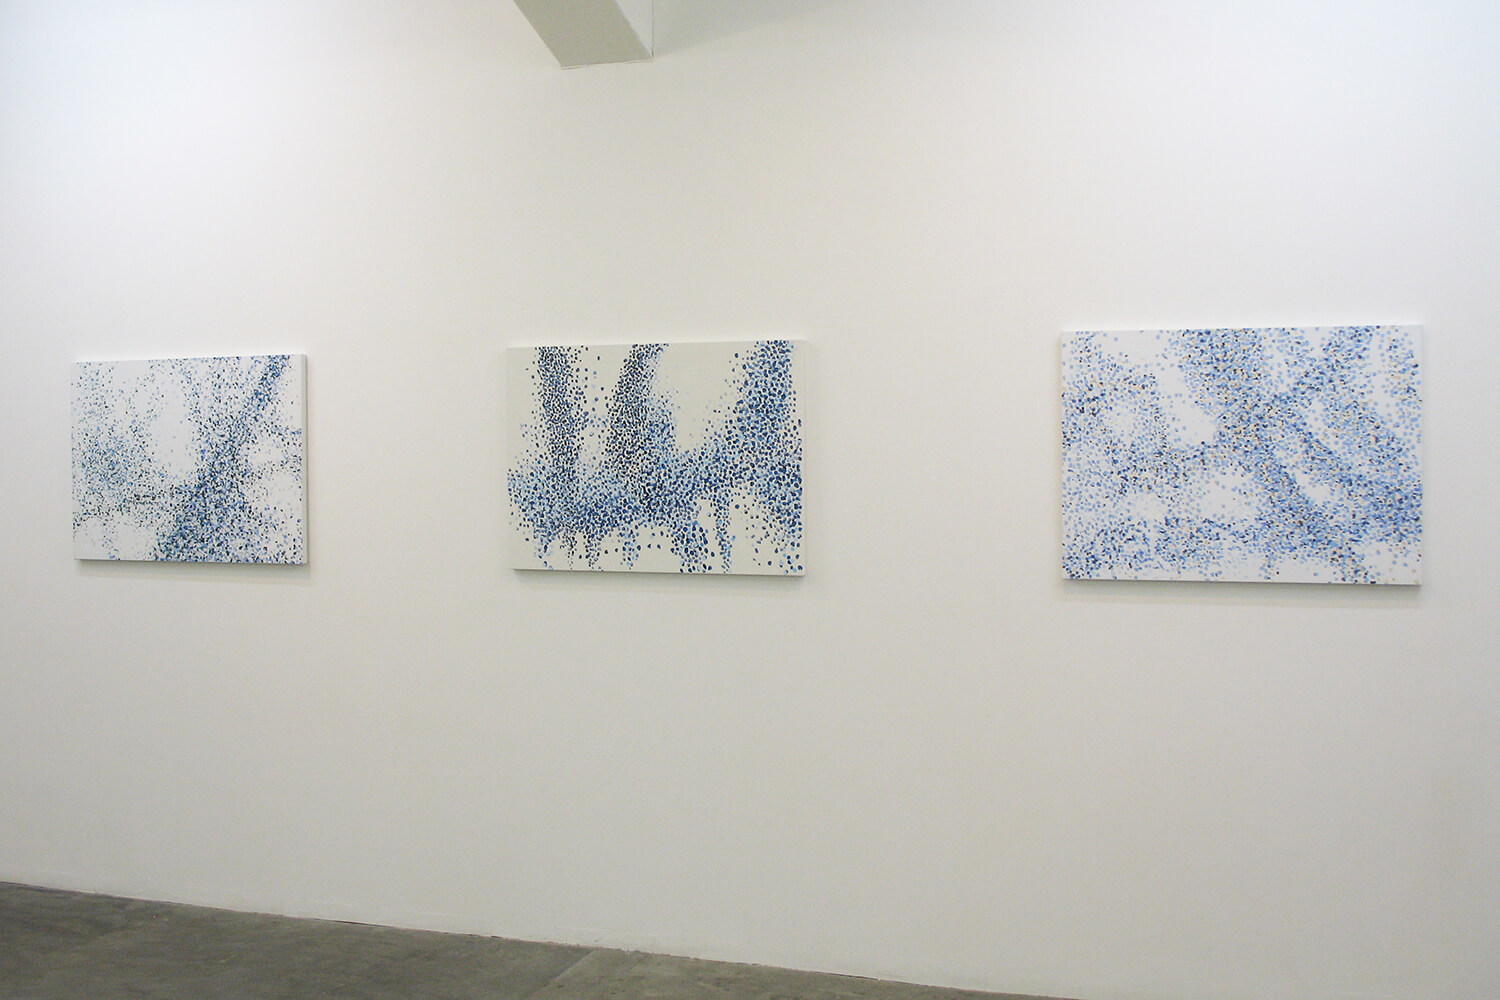 When the Dust Settles<br>Oil on Canvas, 65 x 91 cm, 2012 (each)